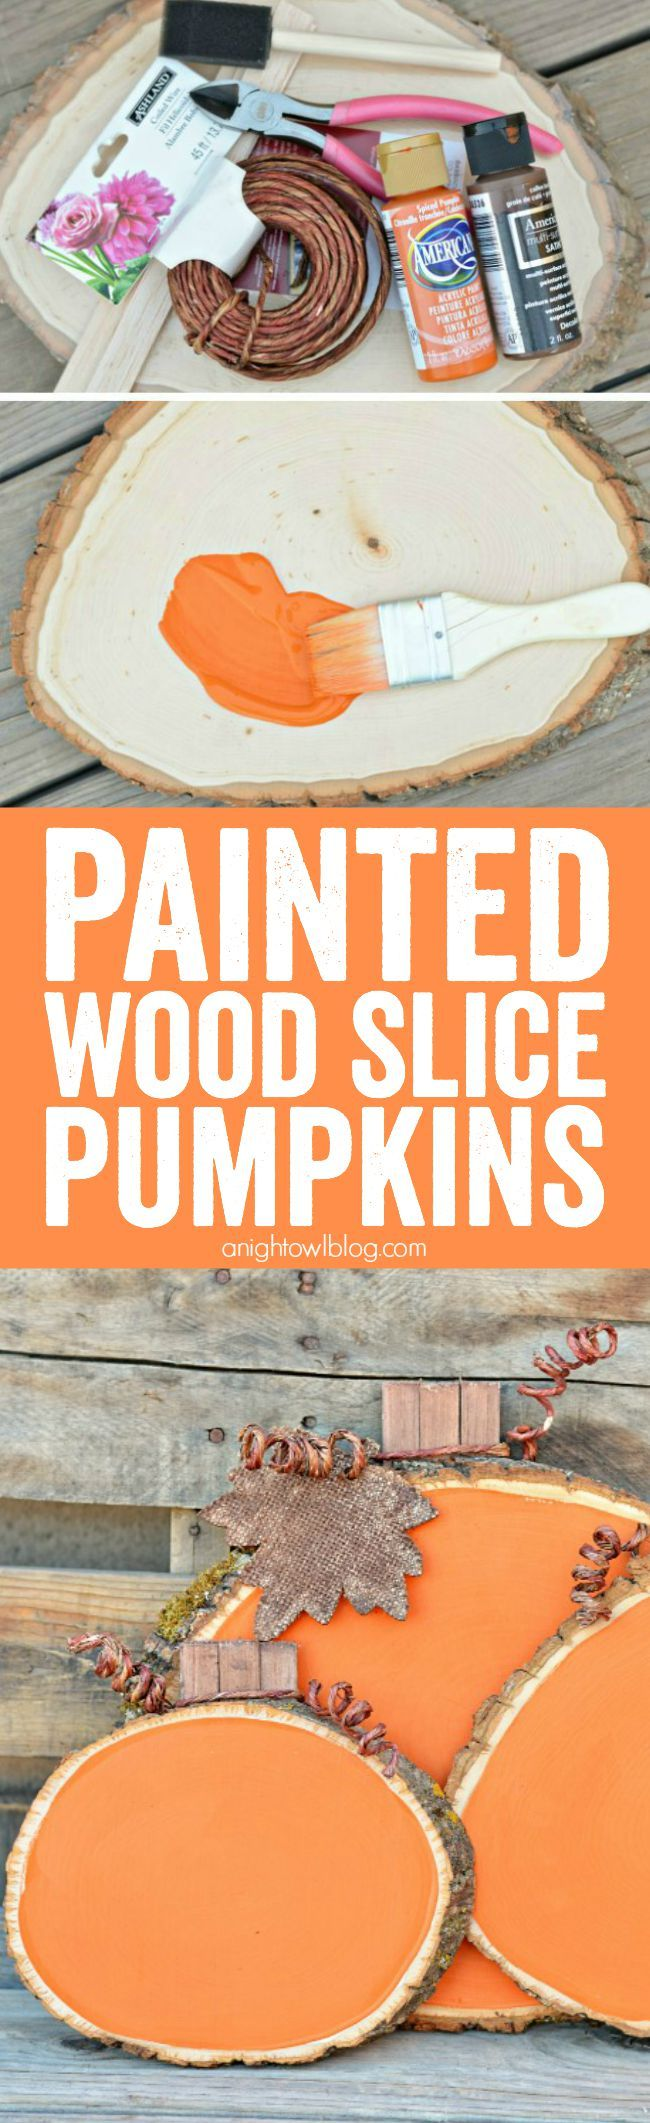 DIY Painted Wood Slice Pumpkins. Make adorable craft wood slice pumpkins from wood and paint!  Tutorial via